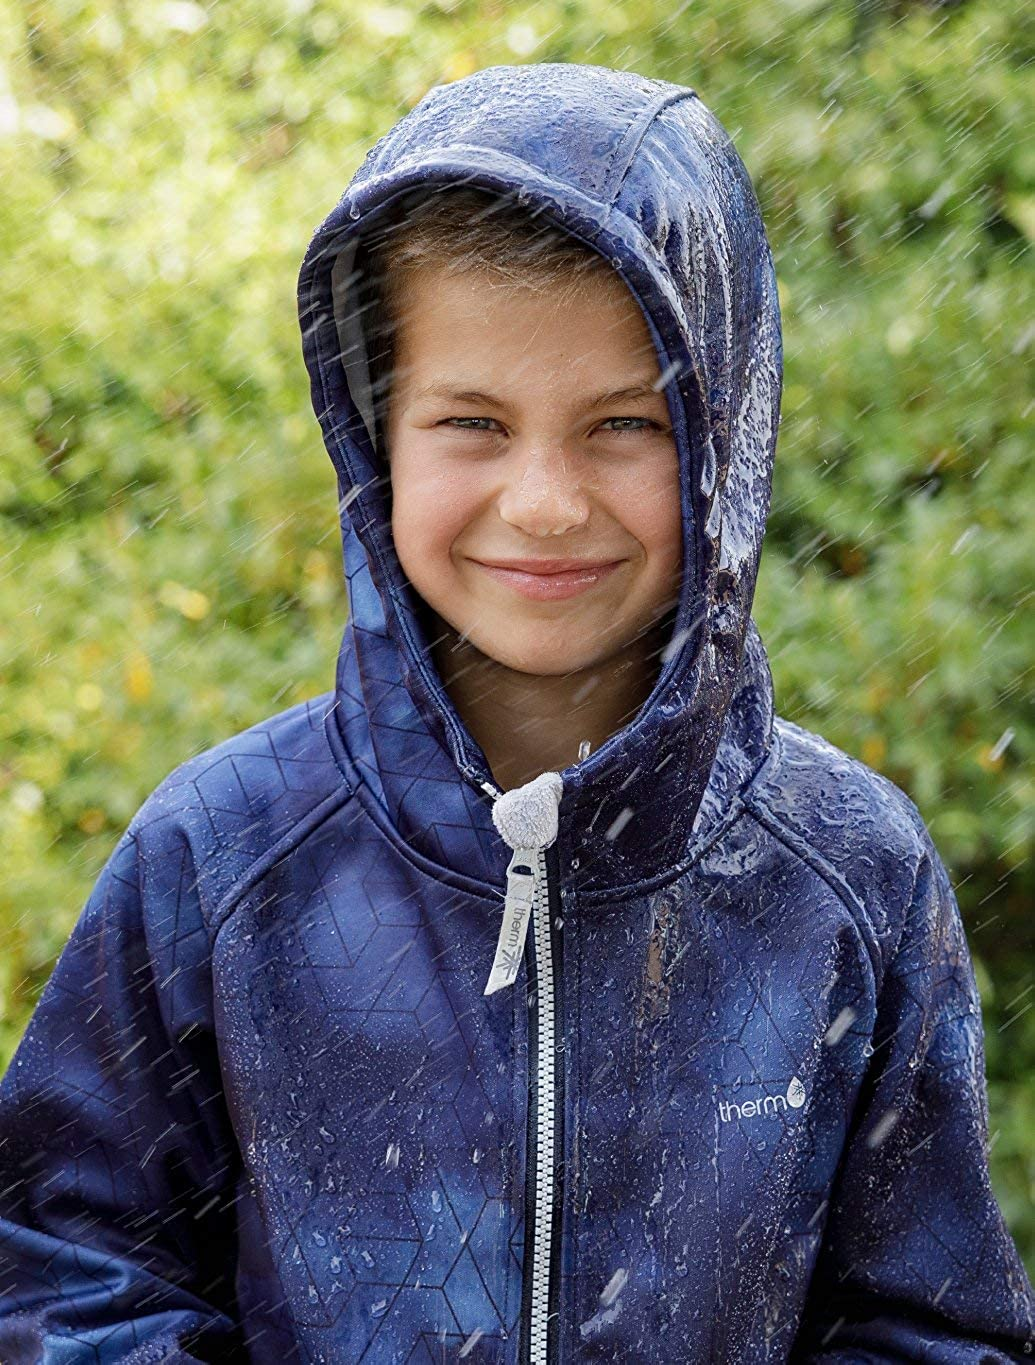 Therm Boys Rain Jacket Toddler Kids Youth Lightweight Recycled Plastic Raincoat Fleece Lined Softshell